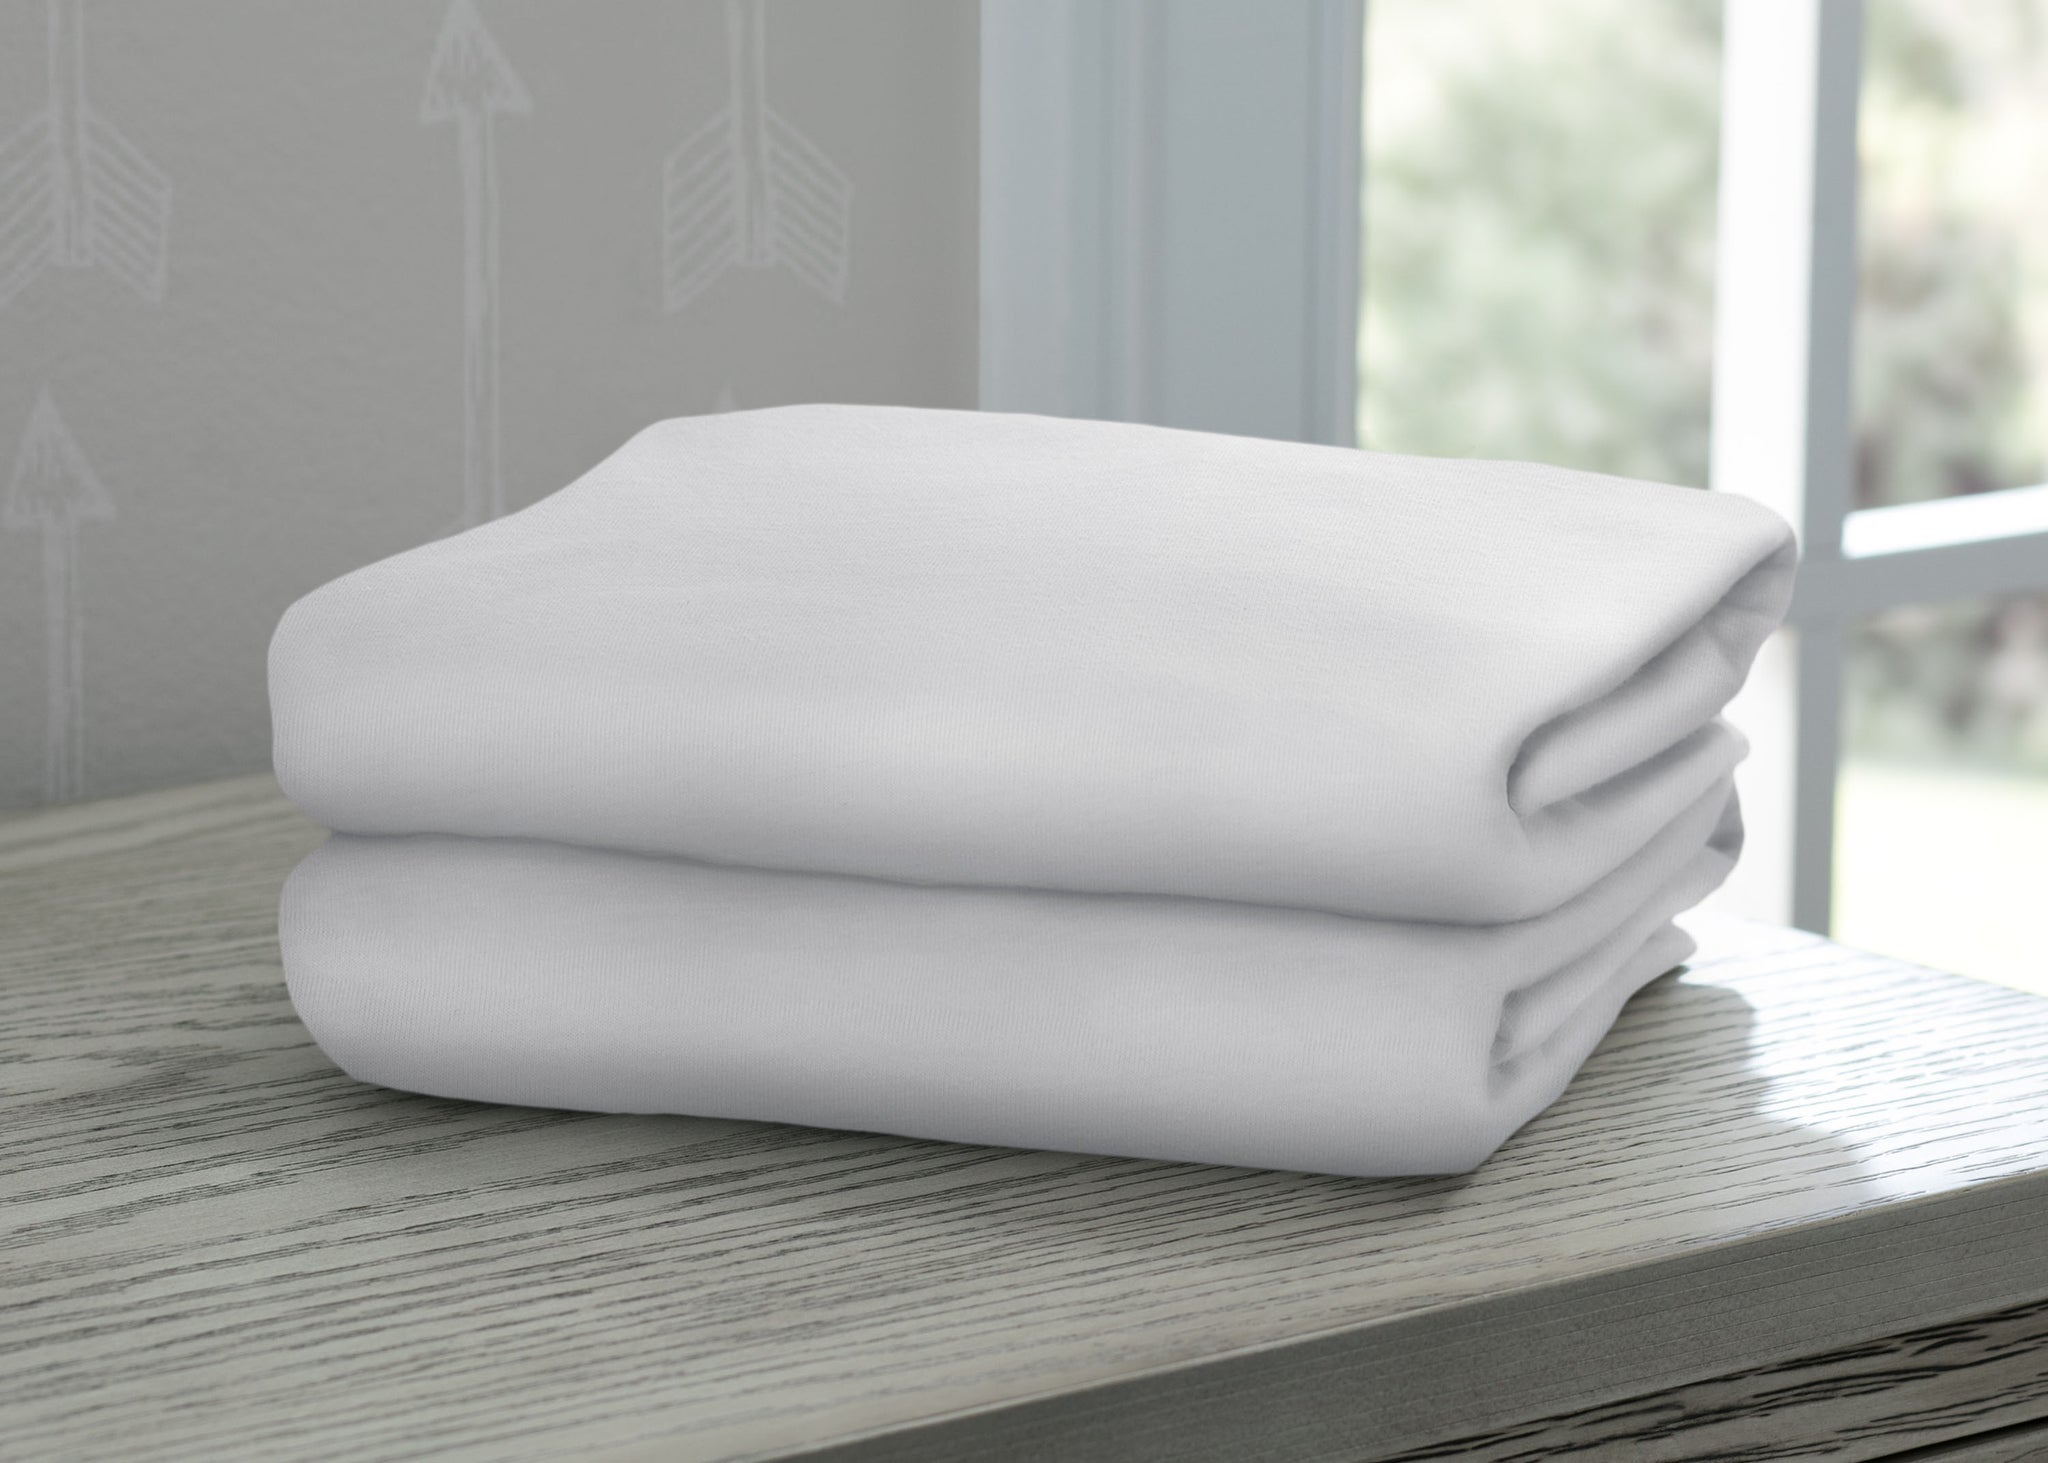 Delta Children White (100) Fitted Bassinet Sheet Set – 2 Pack Hangtag View